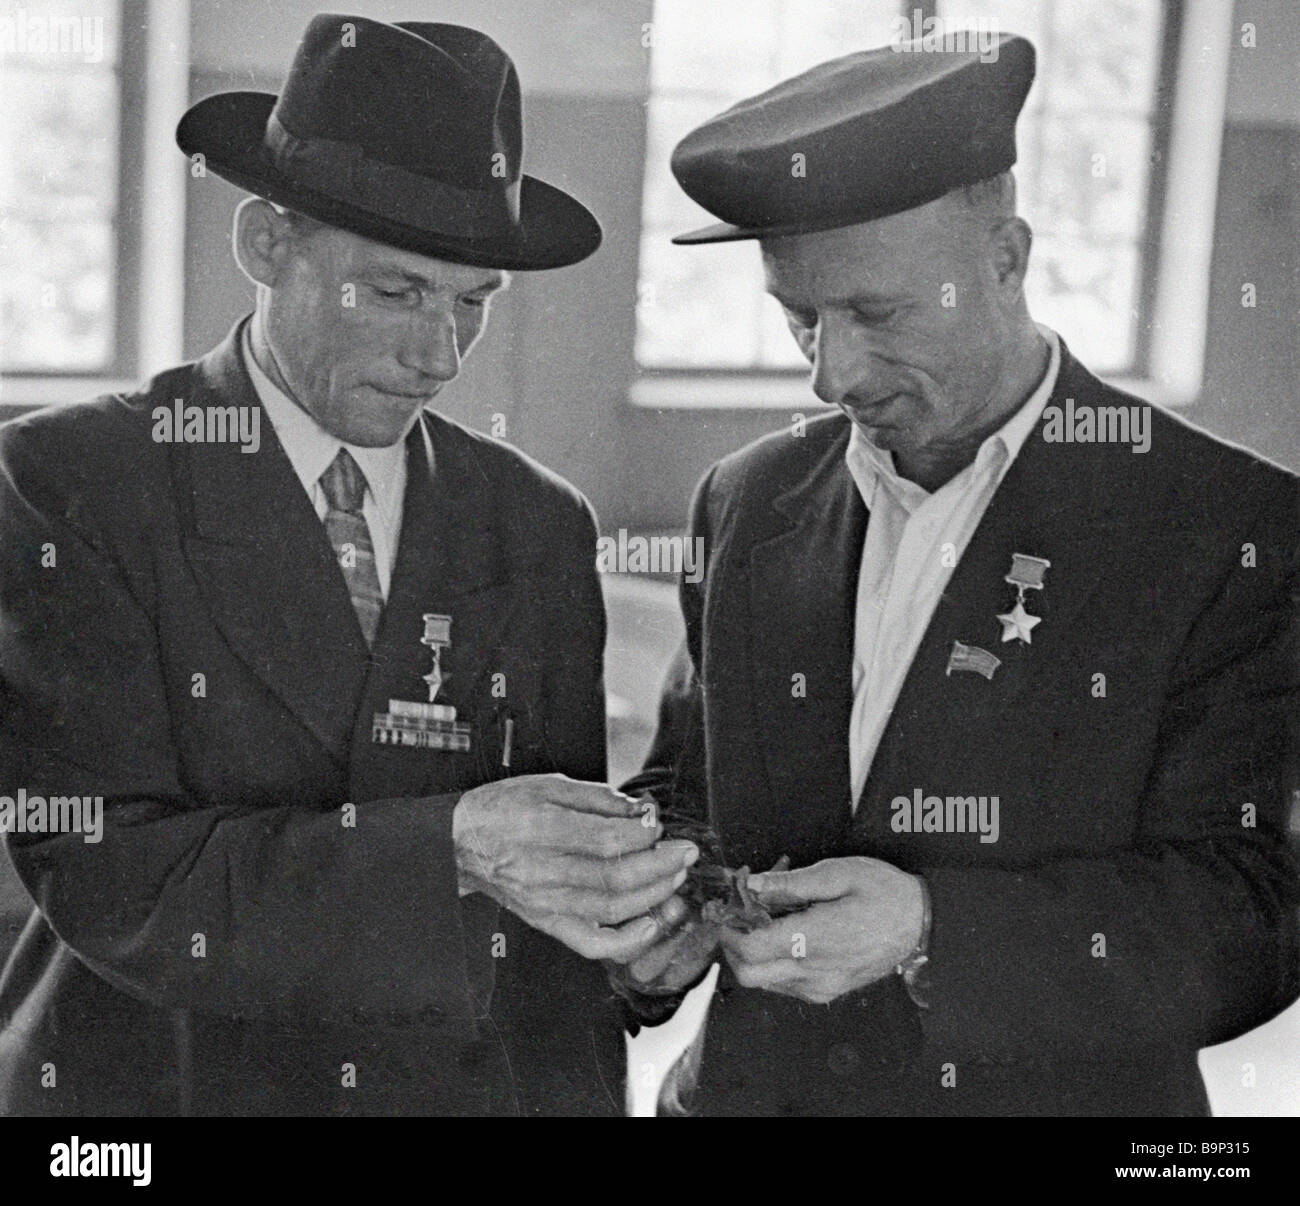 World War Two veterans Meliton Kantaria and Mikhail Yegorov Heroes of the Soviet Union - Stock Image